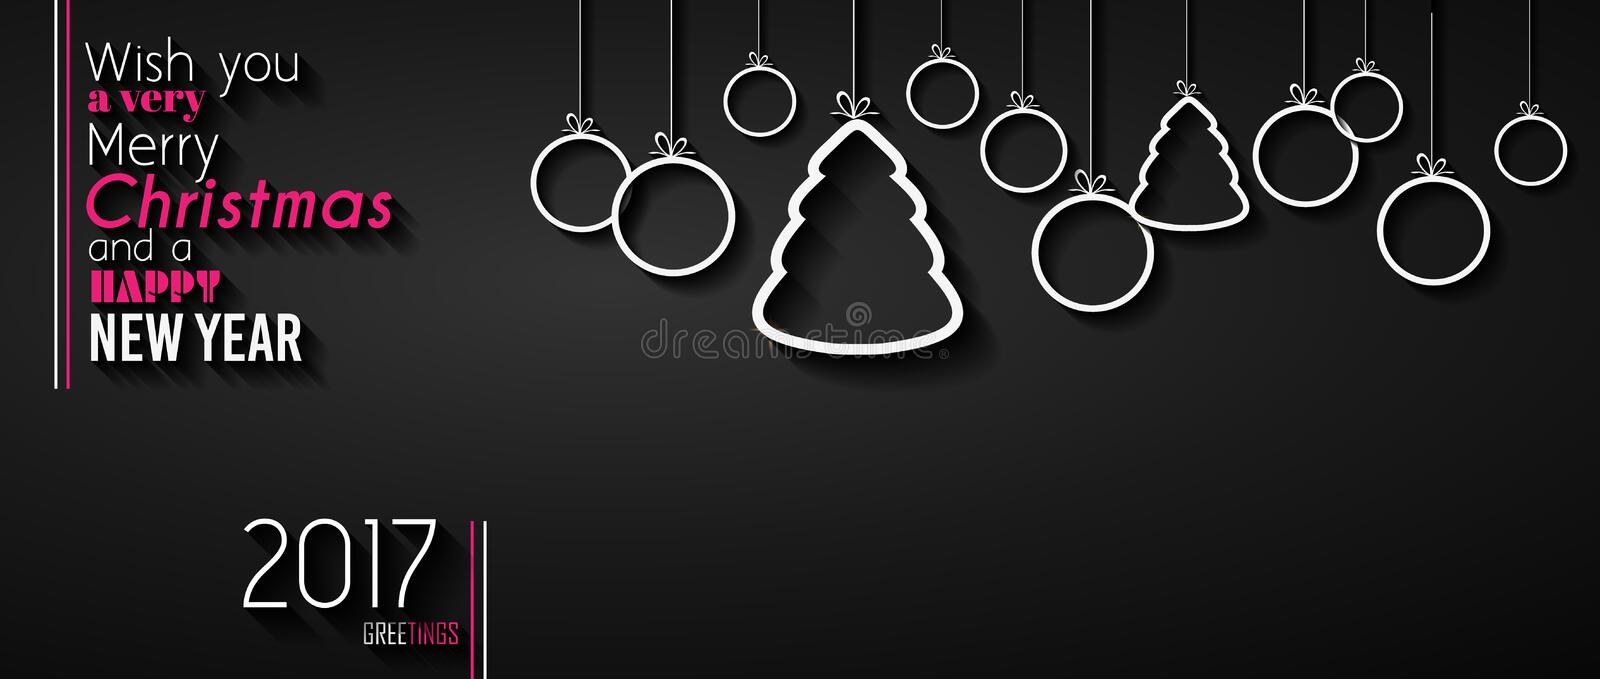 2017 Happy New Year Background for your Seasonal Flyers vector illustration